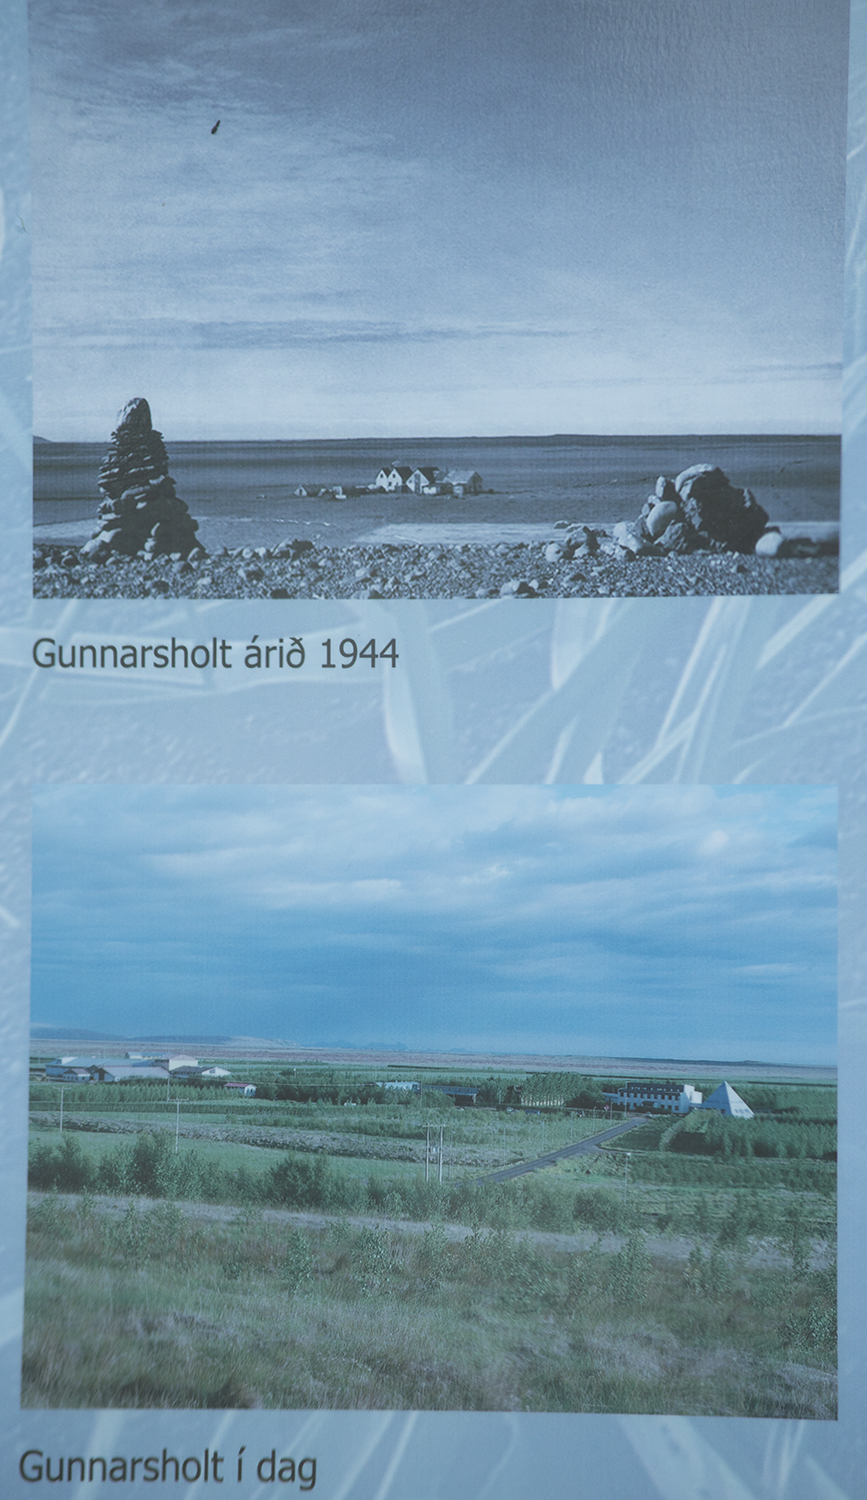 Gunnarsholt area in 1940s and today following restoration work